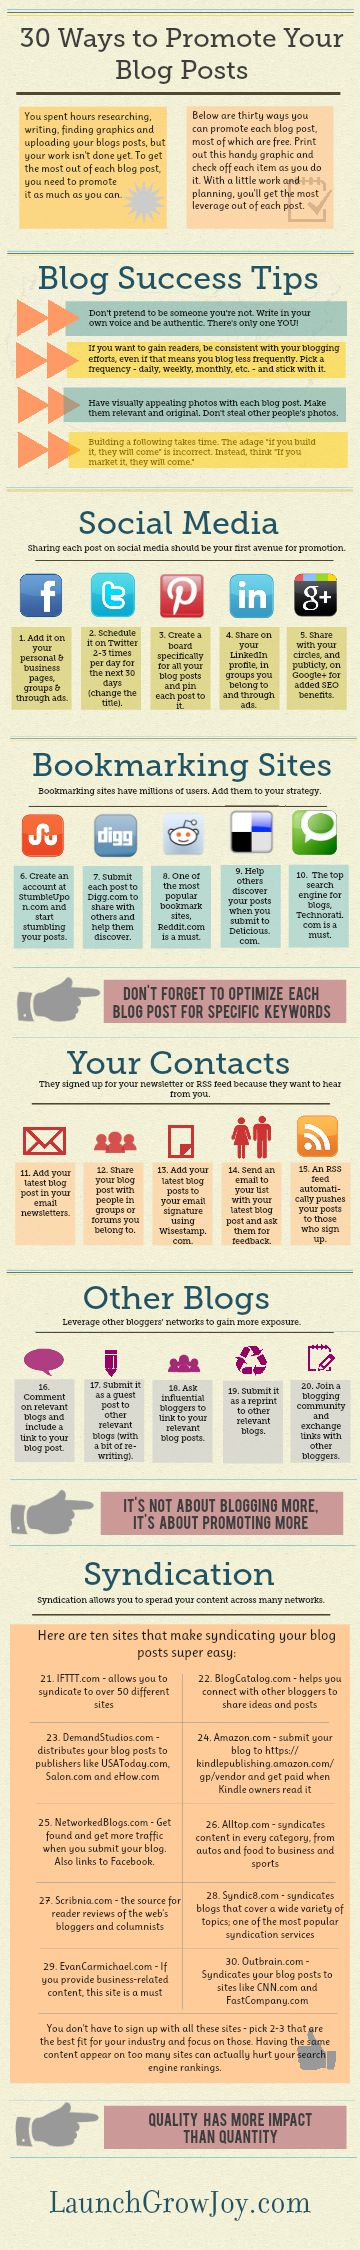 Promote Your Blog – 30 Ways to Get More Visibility [Infographic]